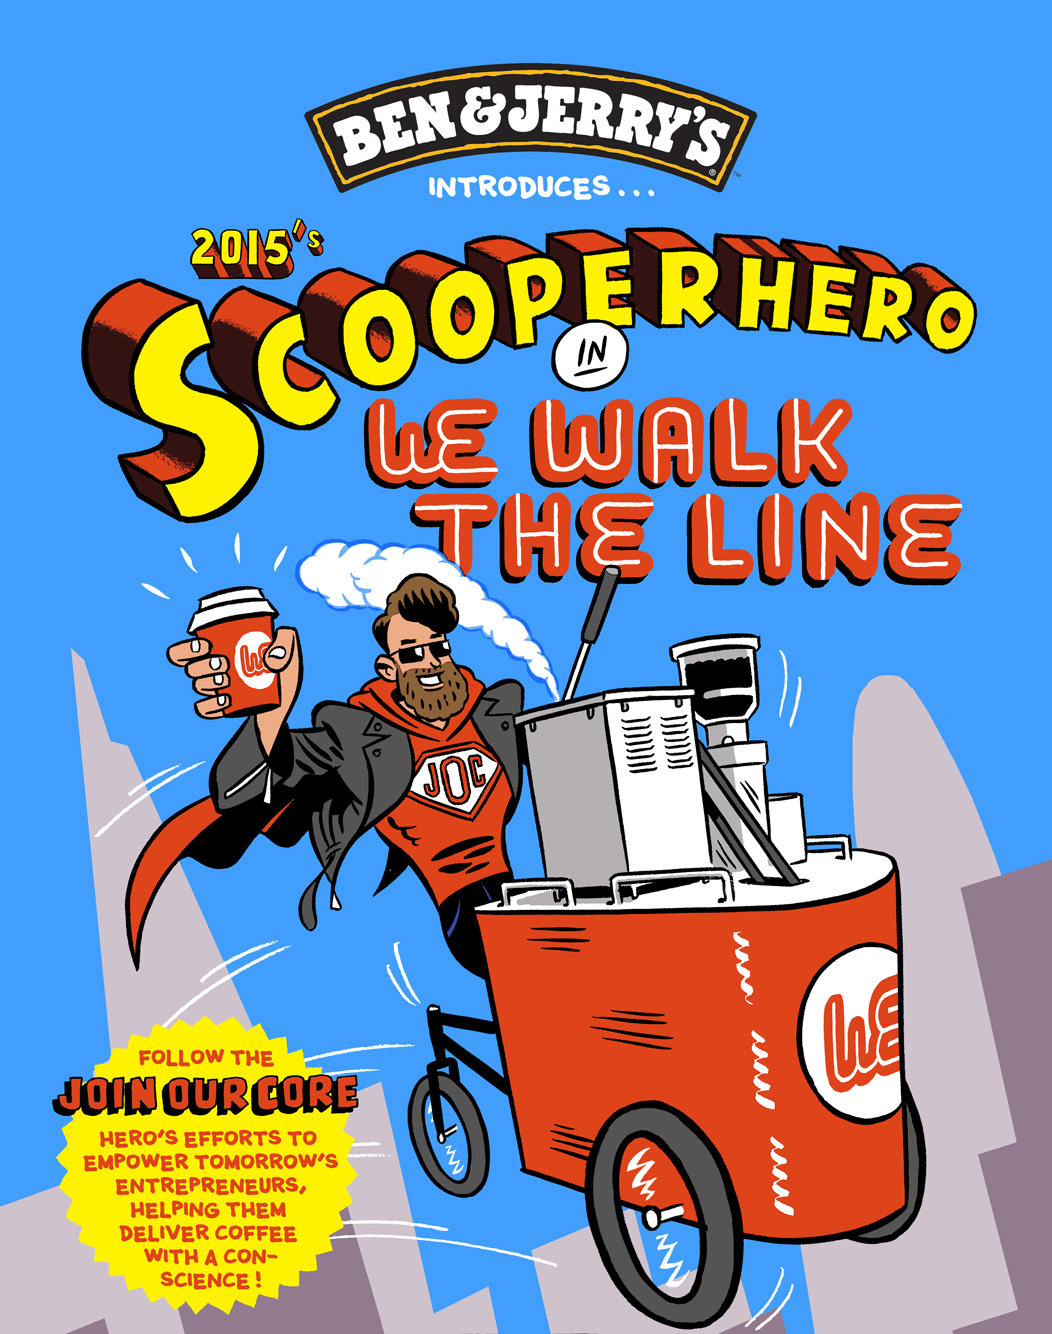 Walk-The-Line-Cover-FINAL-.png